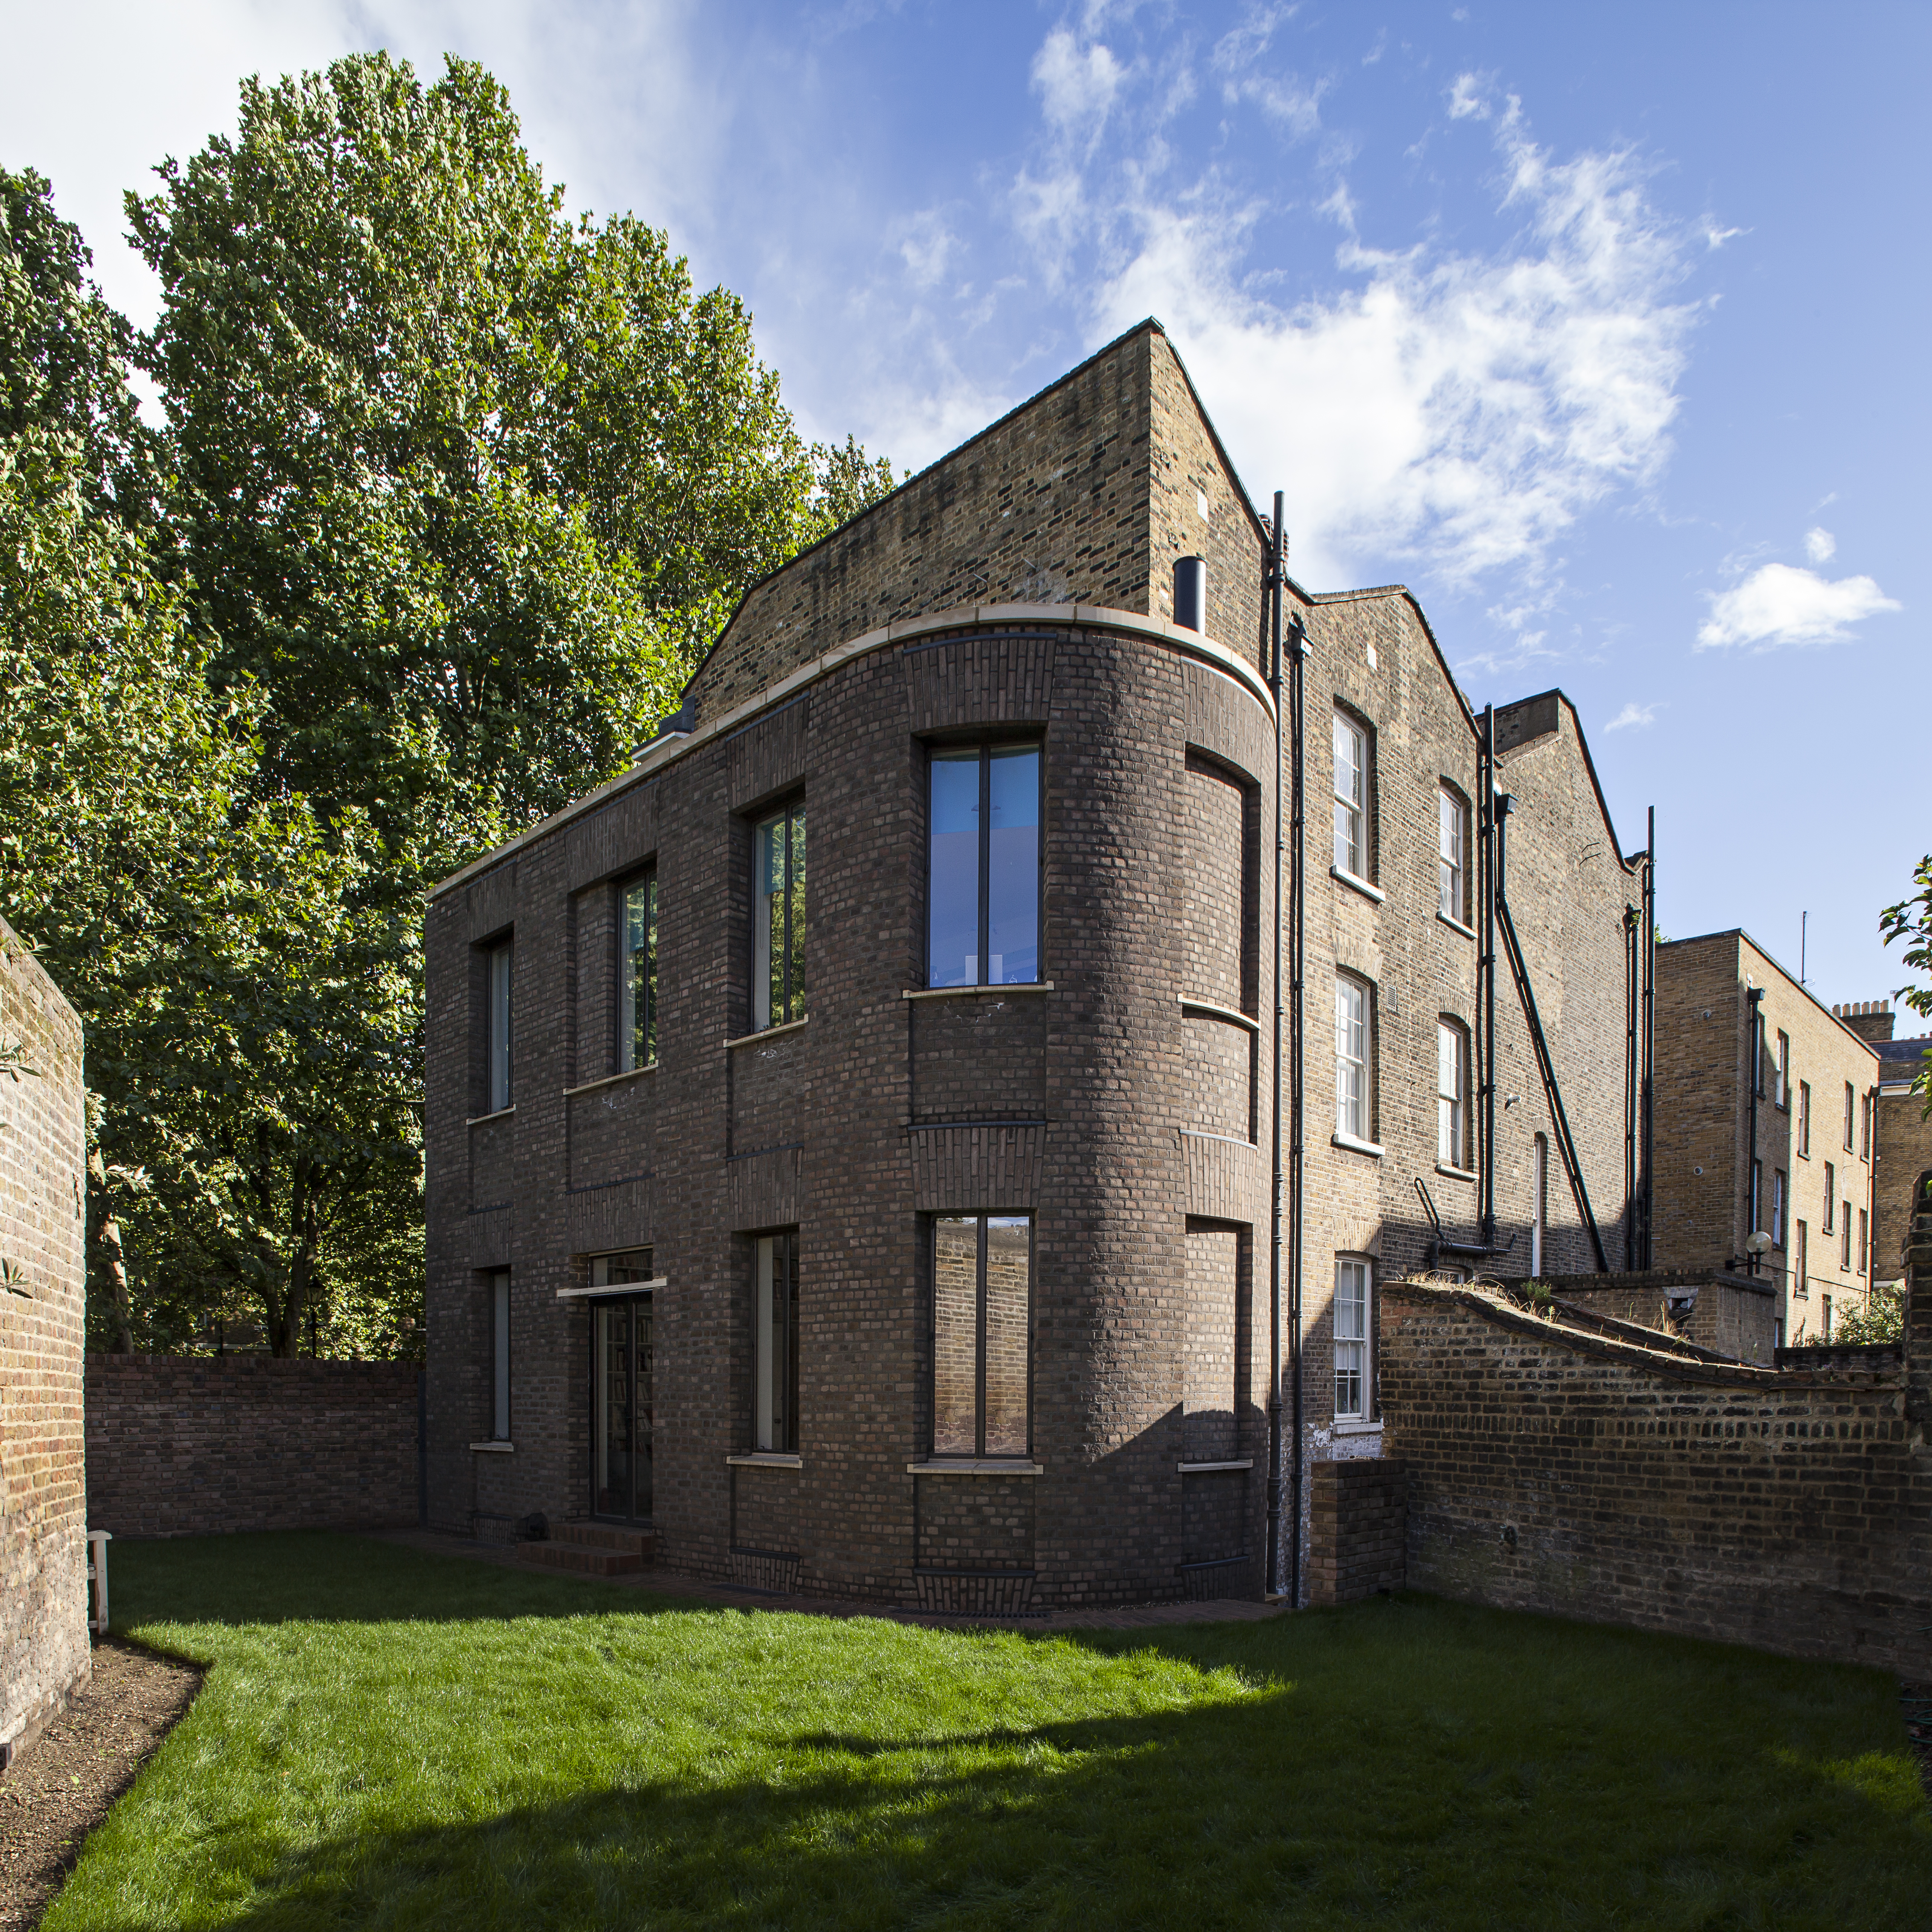 Garden front, Wapping